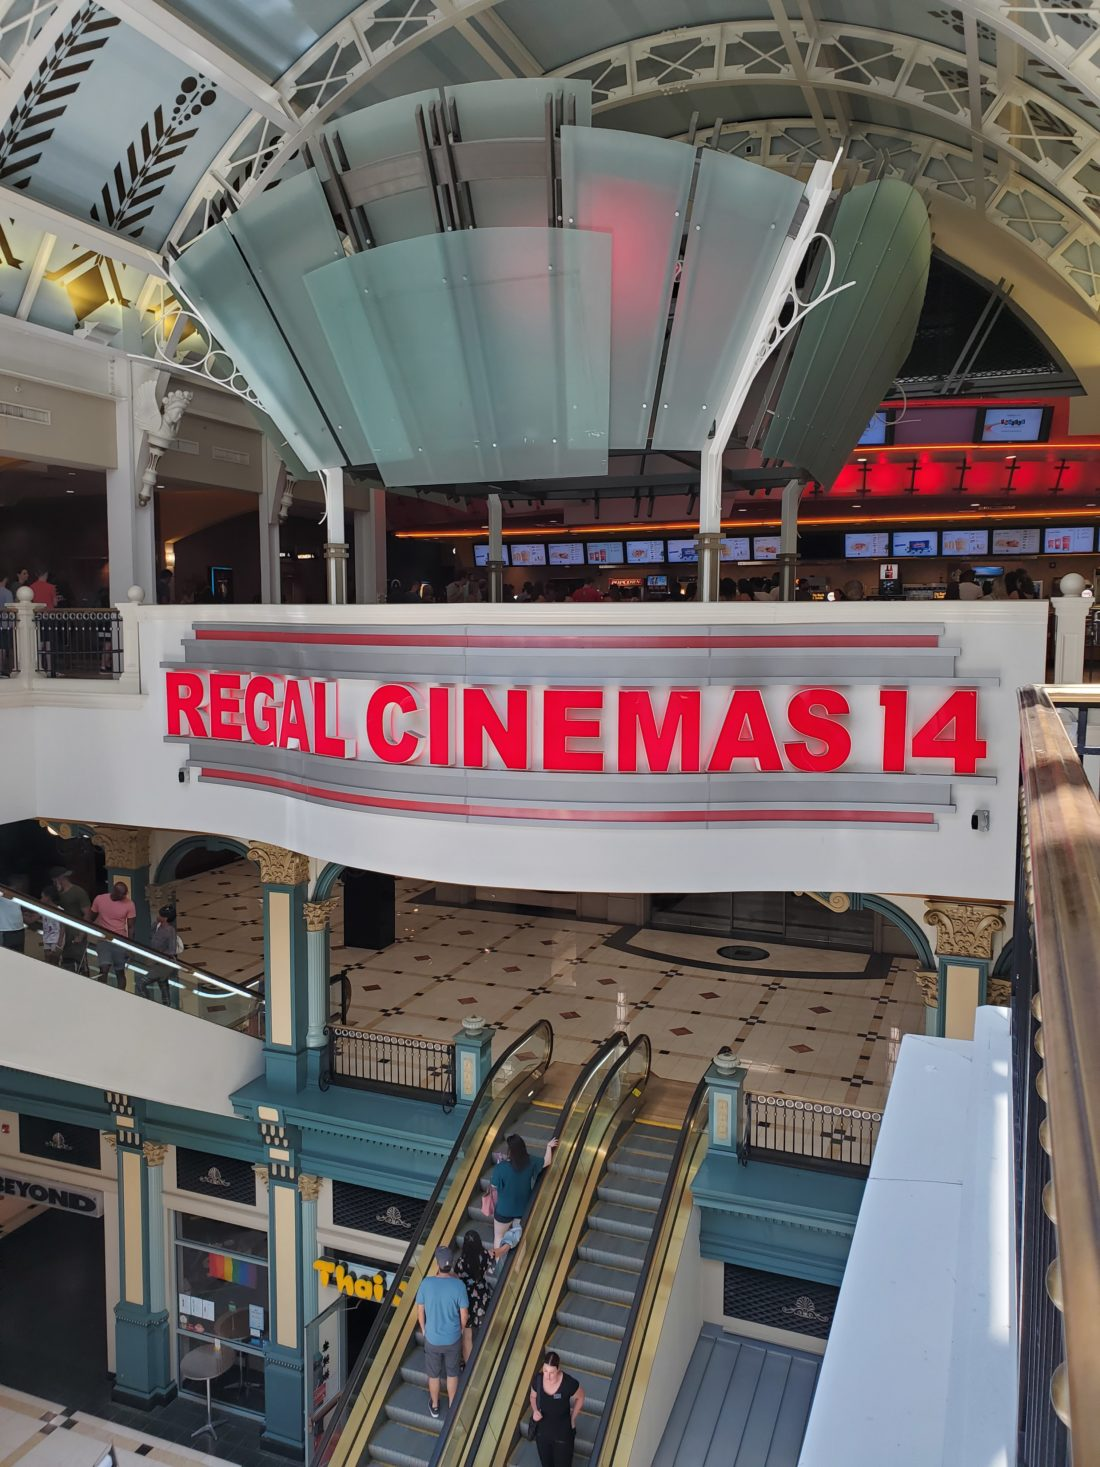 Regal Cinema Washington DC. Catch the latest 4dx films in Washinton DC's Regal Cinema Gallery Place 14.